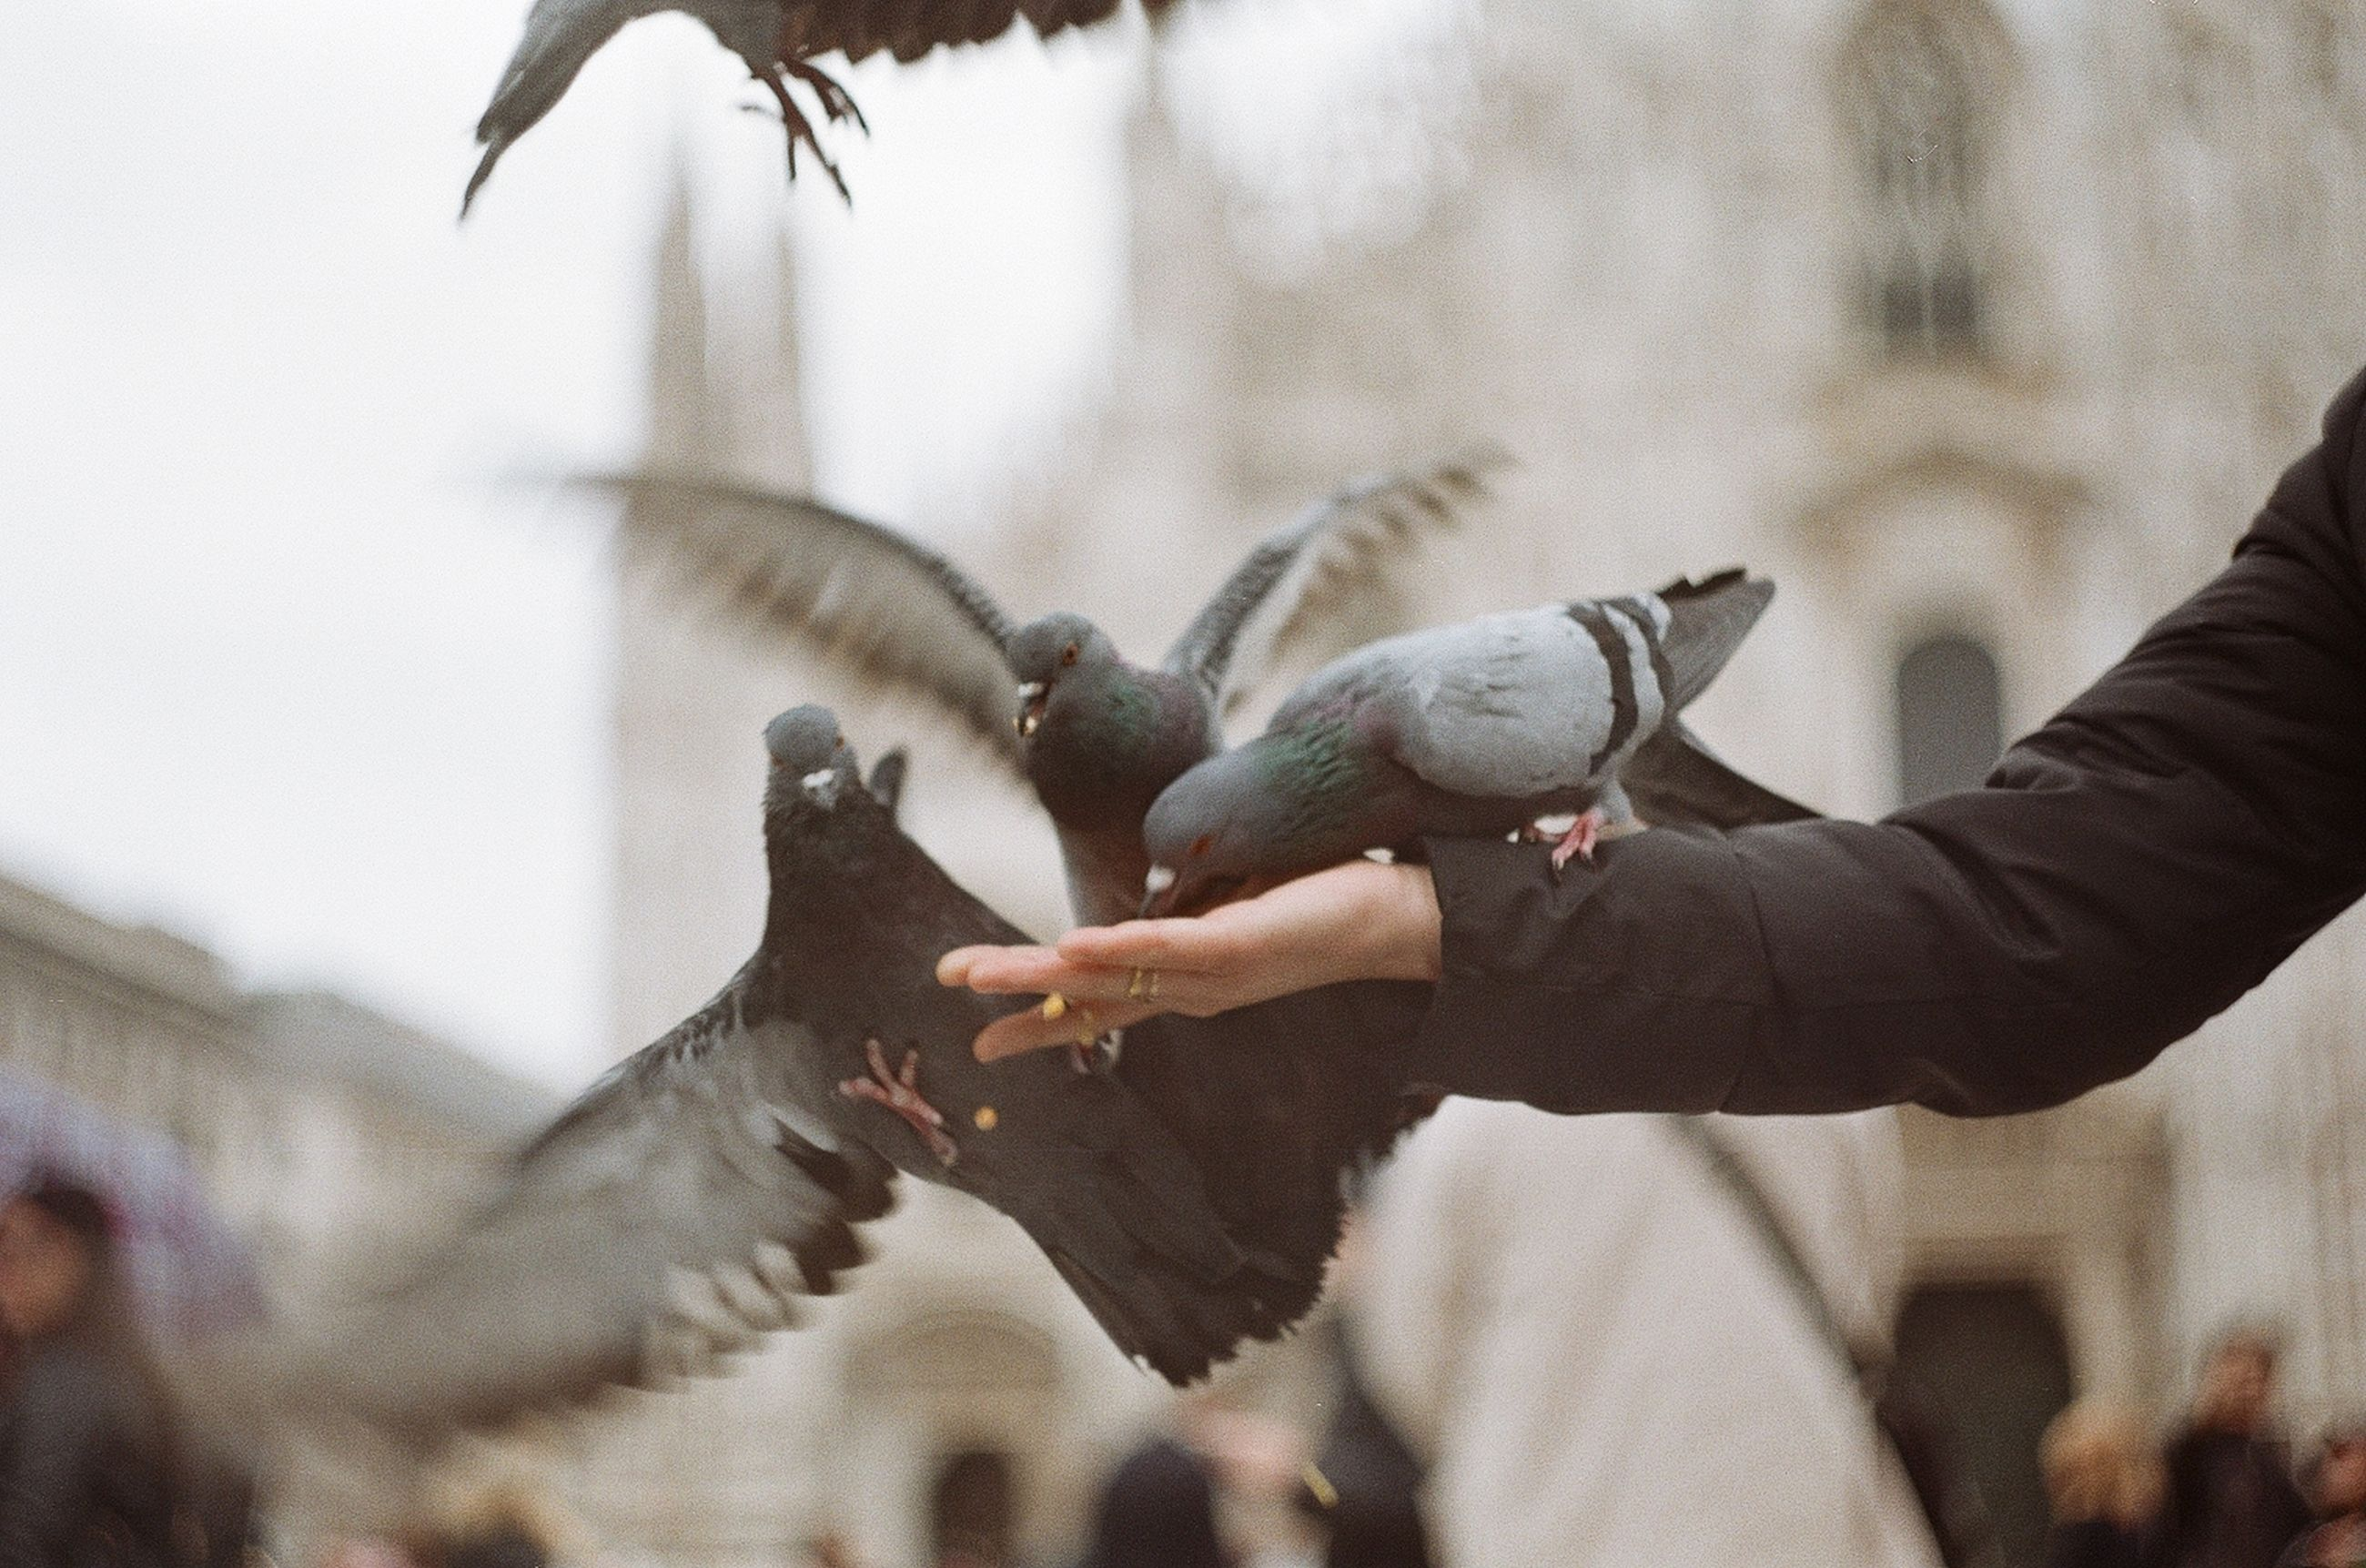 bird, vertebrate, animals in the wild, animal wildlife, human hand, hand, group of animals, real people, focus on foreground, human body part, day, feeding, one person, spread wings, holding, food, pigeon, outdoors, finger